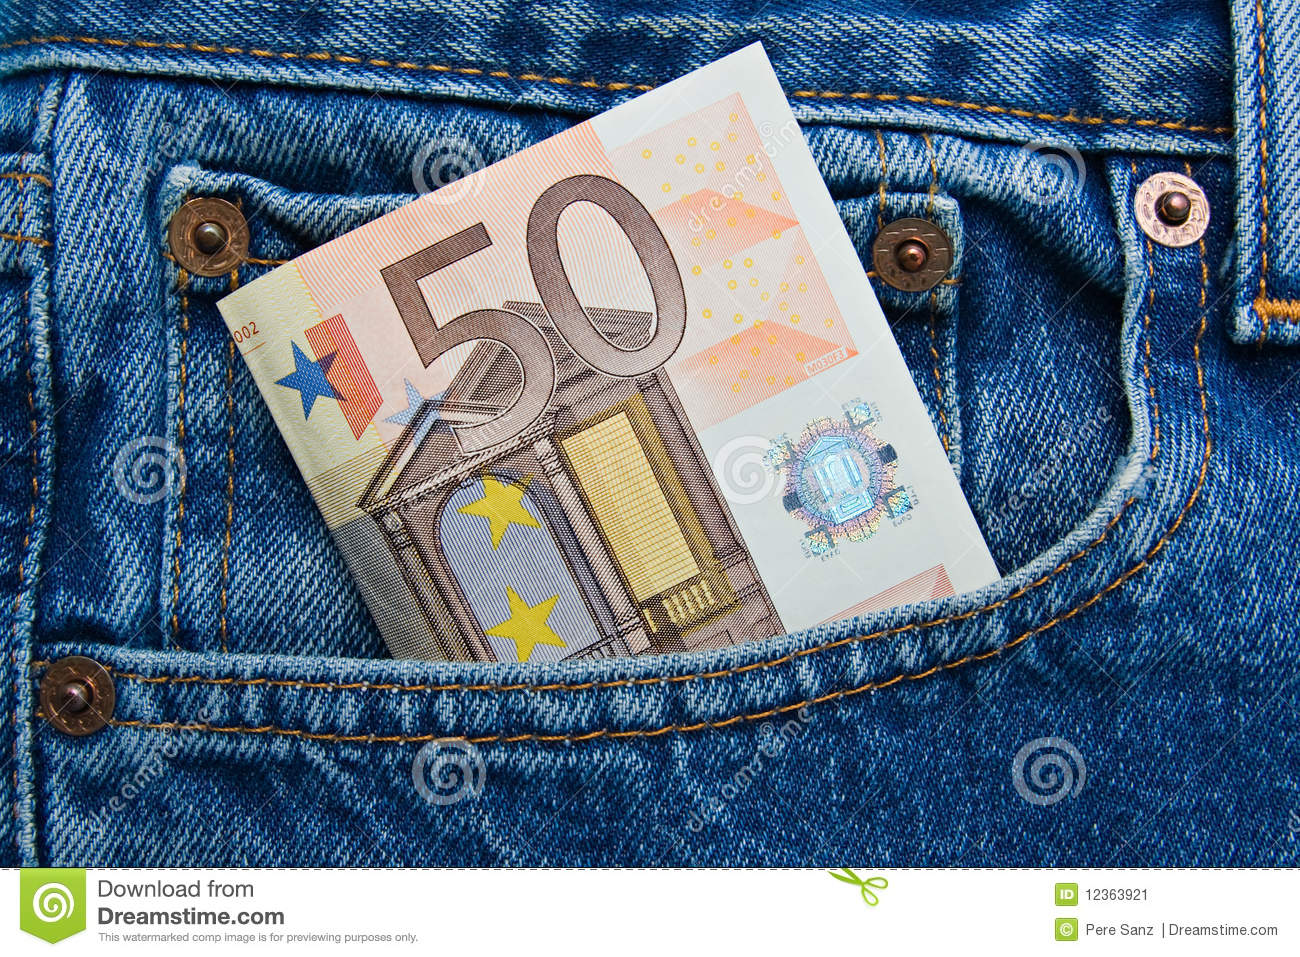 50 euro note in a blue jeans pocket stock image image of clothes jeans 12363921. Black Bedroom Furniture Sets. Home Design Ideas